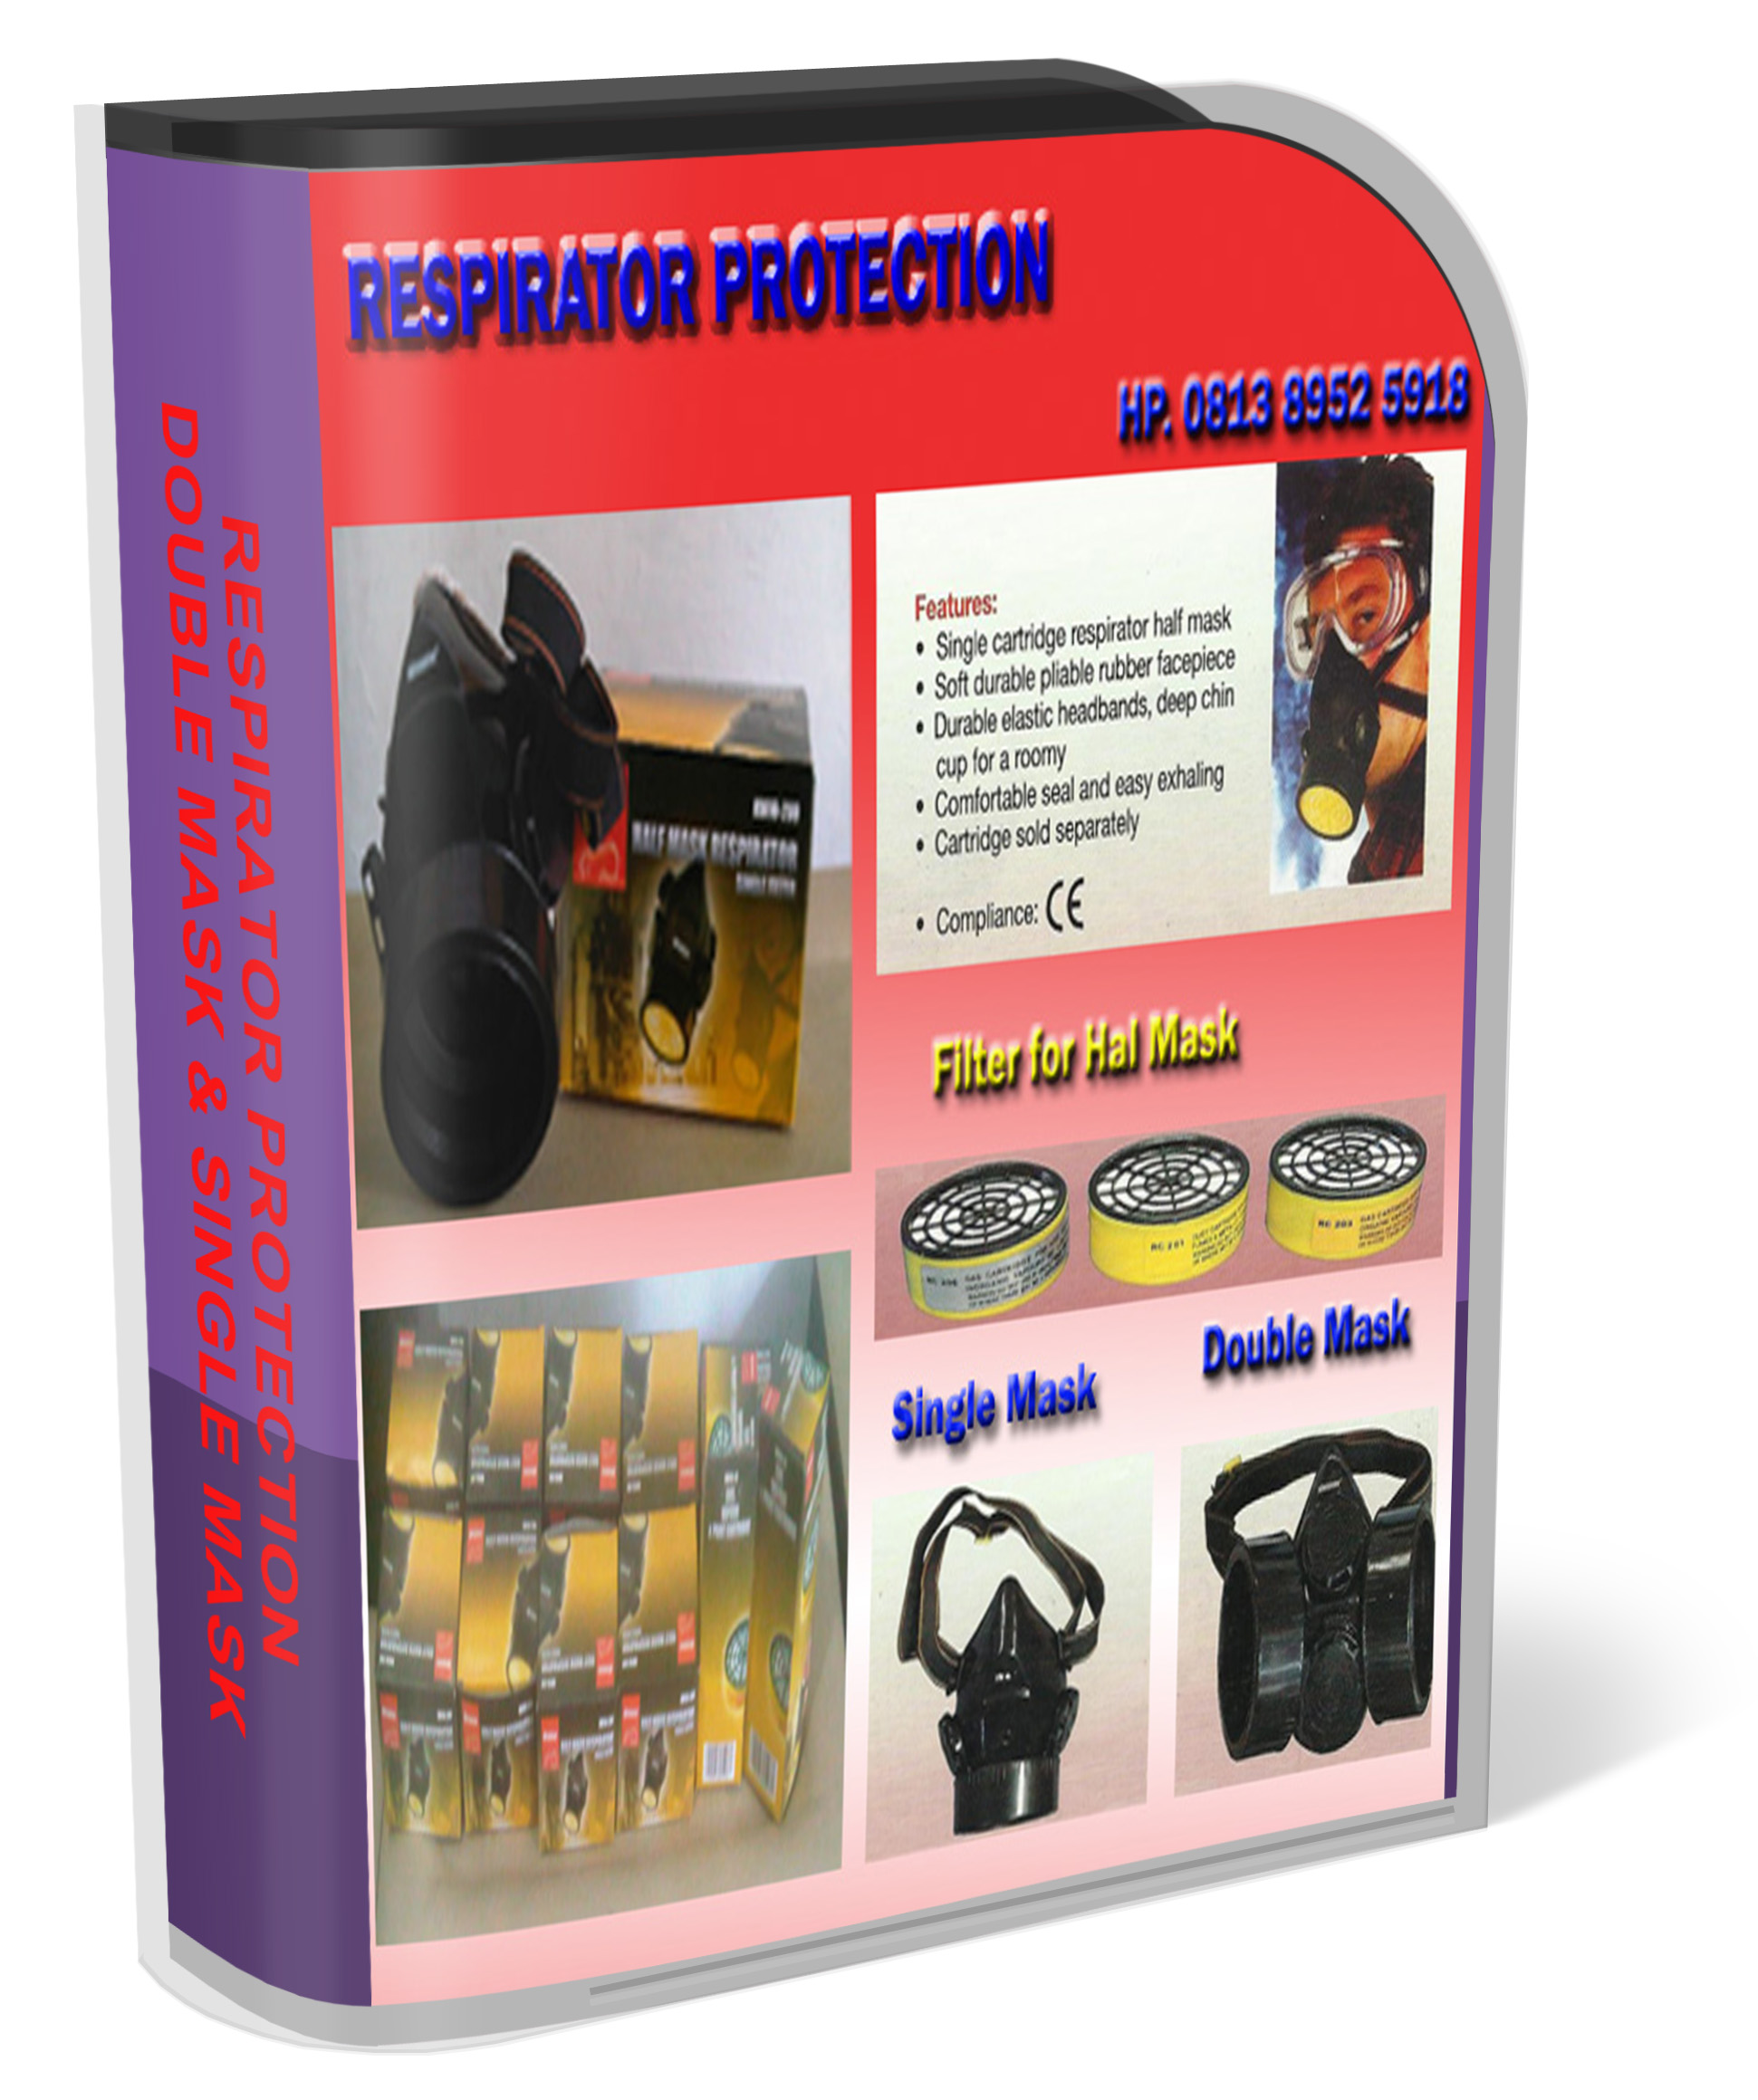 Respirator protection,masker pernapasan, half mask respiator double, single mask